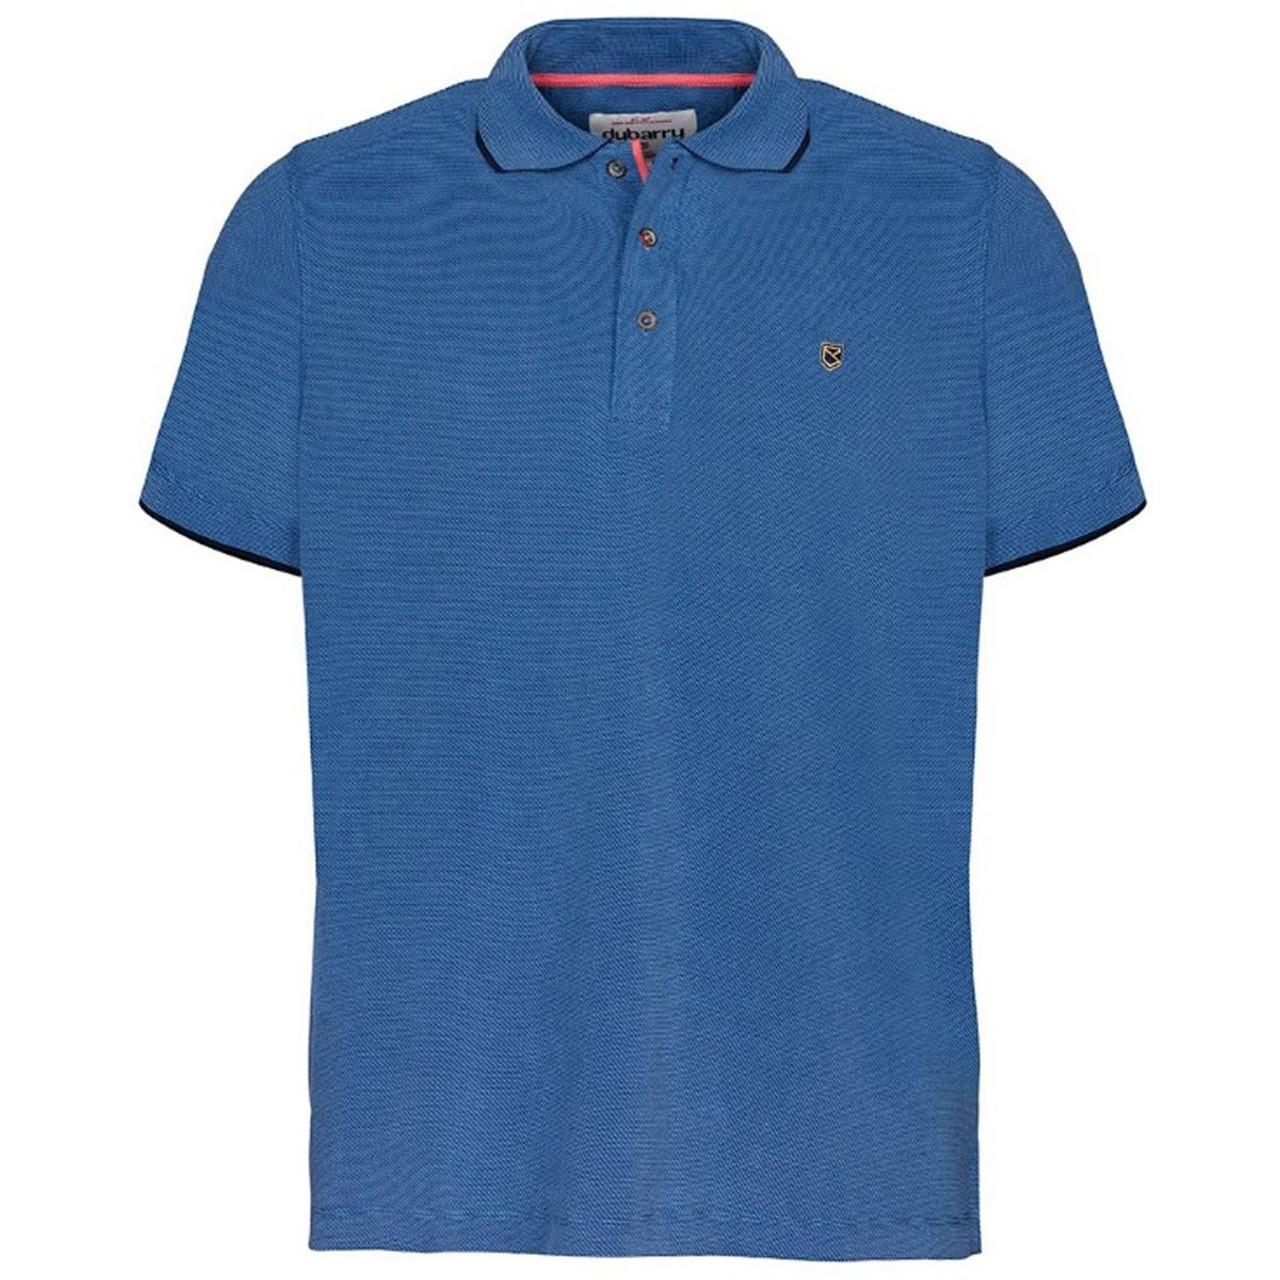 Dubarry Mens Glengarrif Polo Shirt